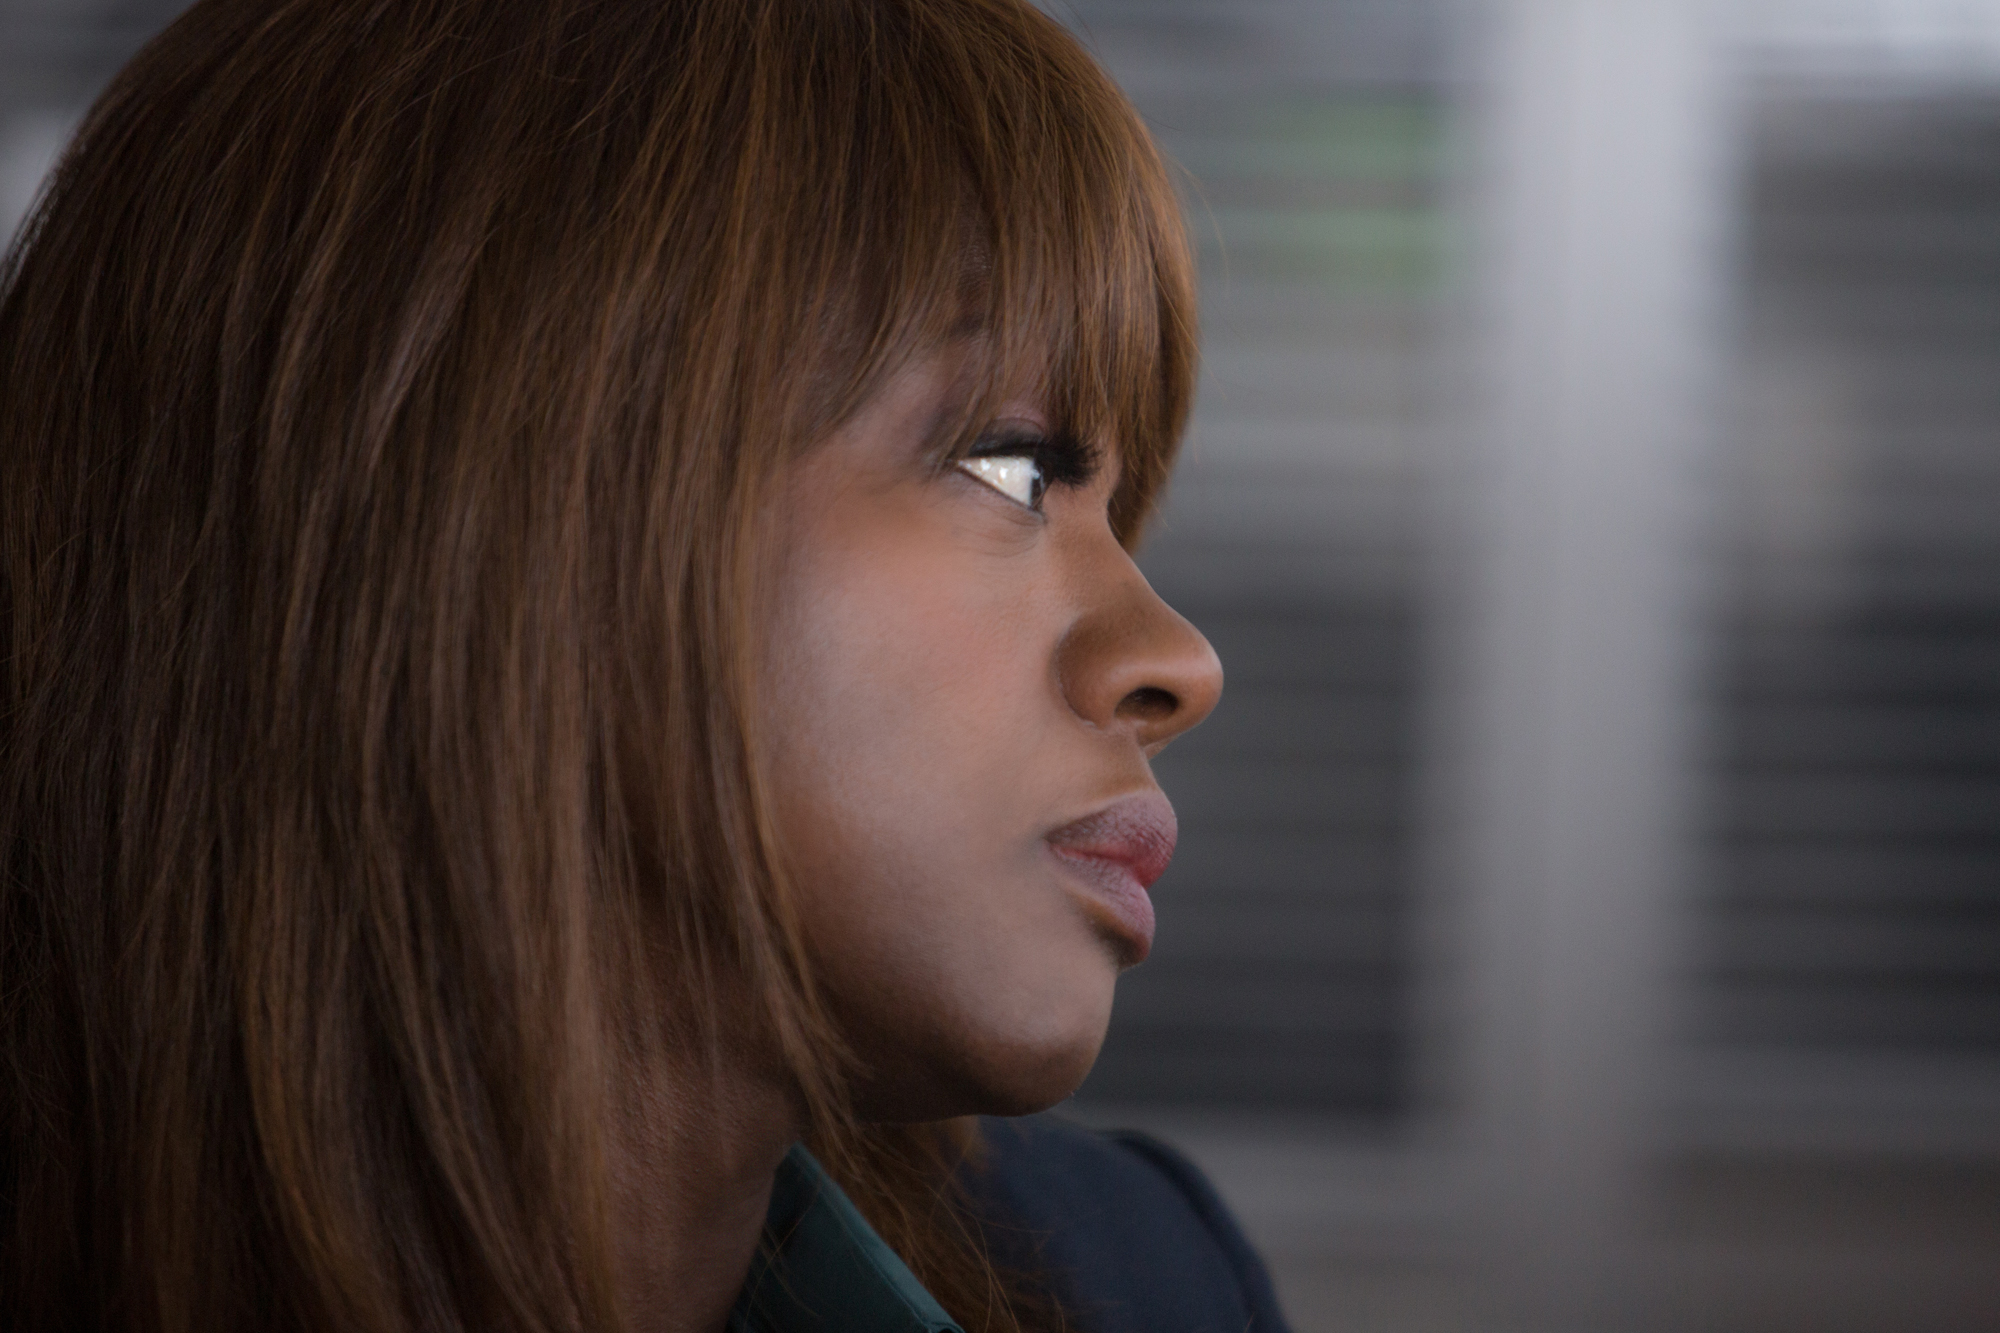 viola davis in blackhat